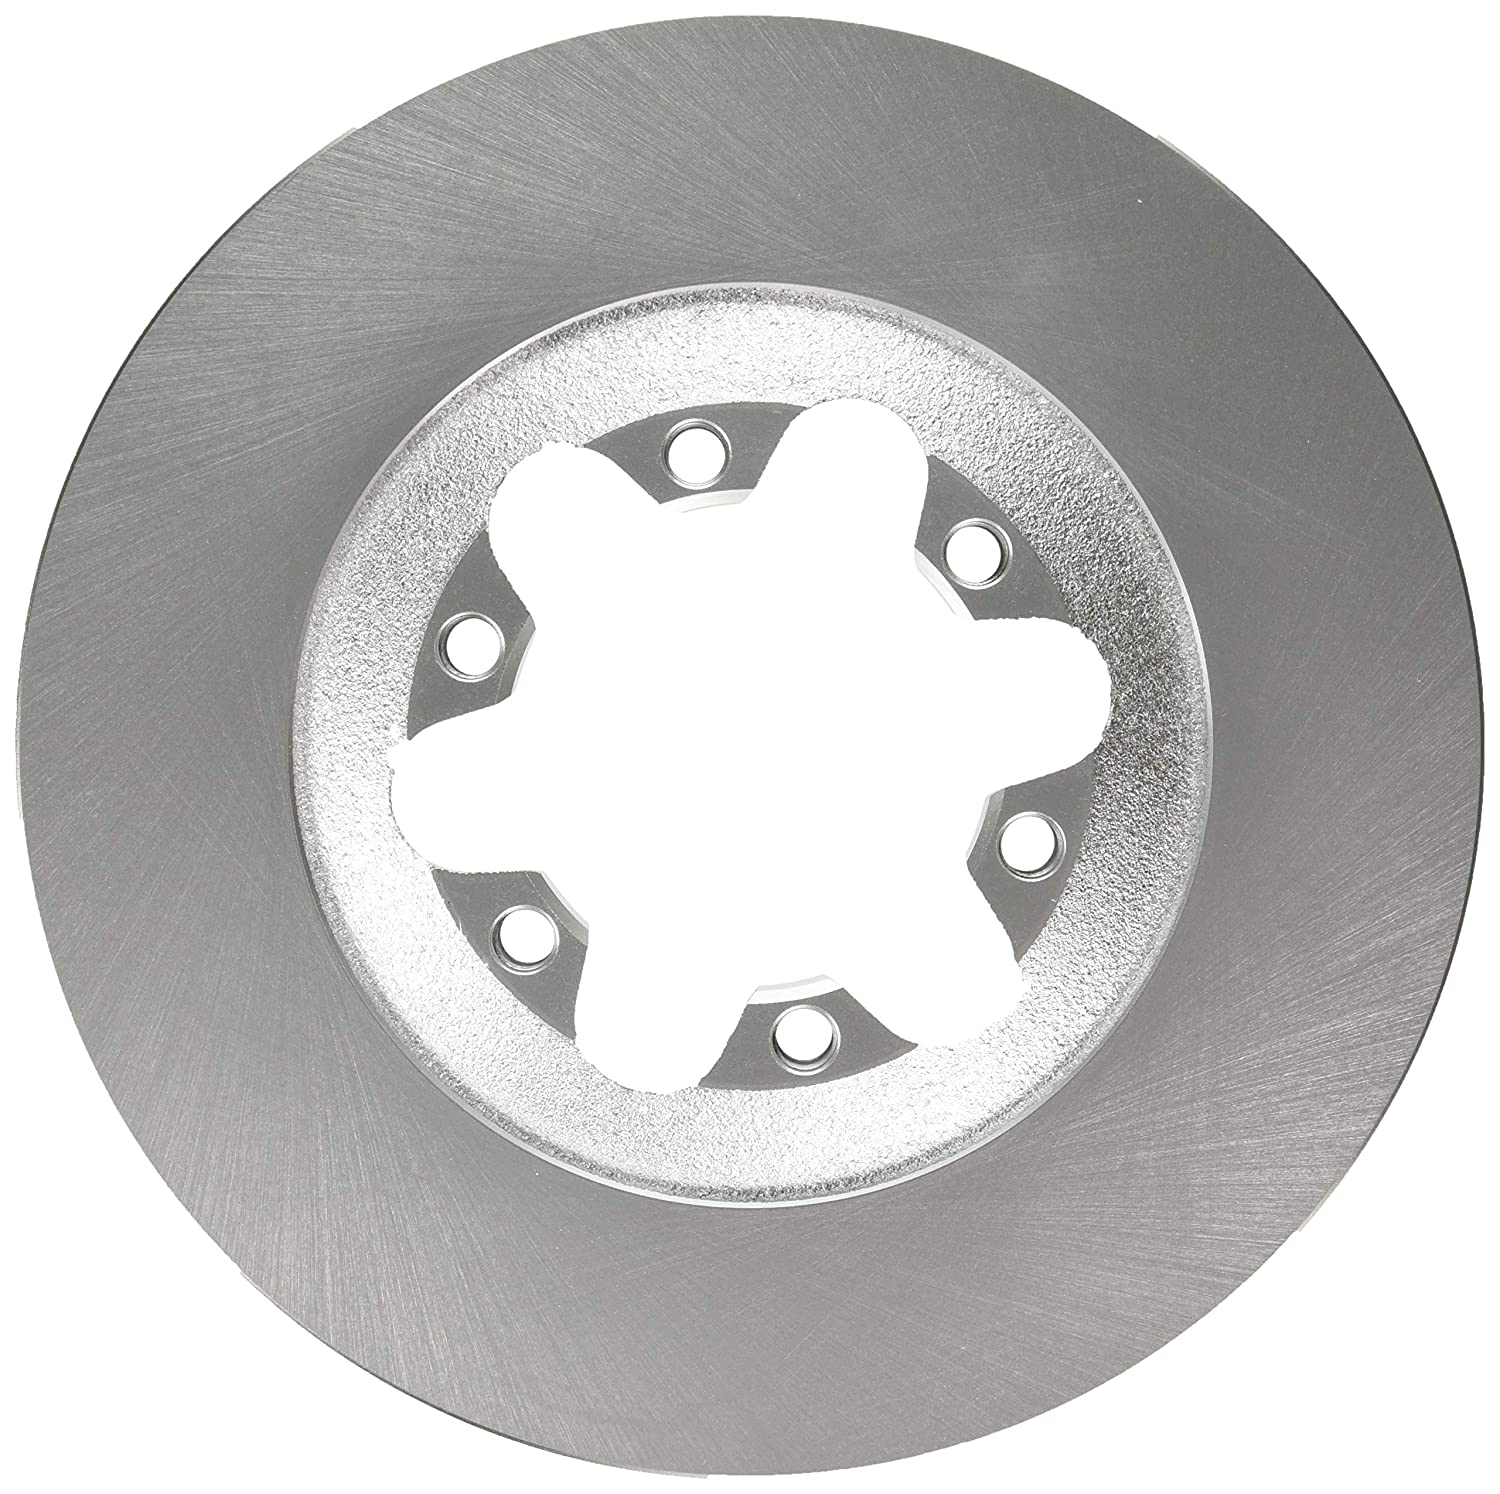 Raybestos 580216FZN Rust Prevention Technology Coated Rotor Brake